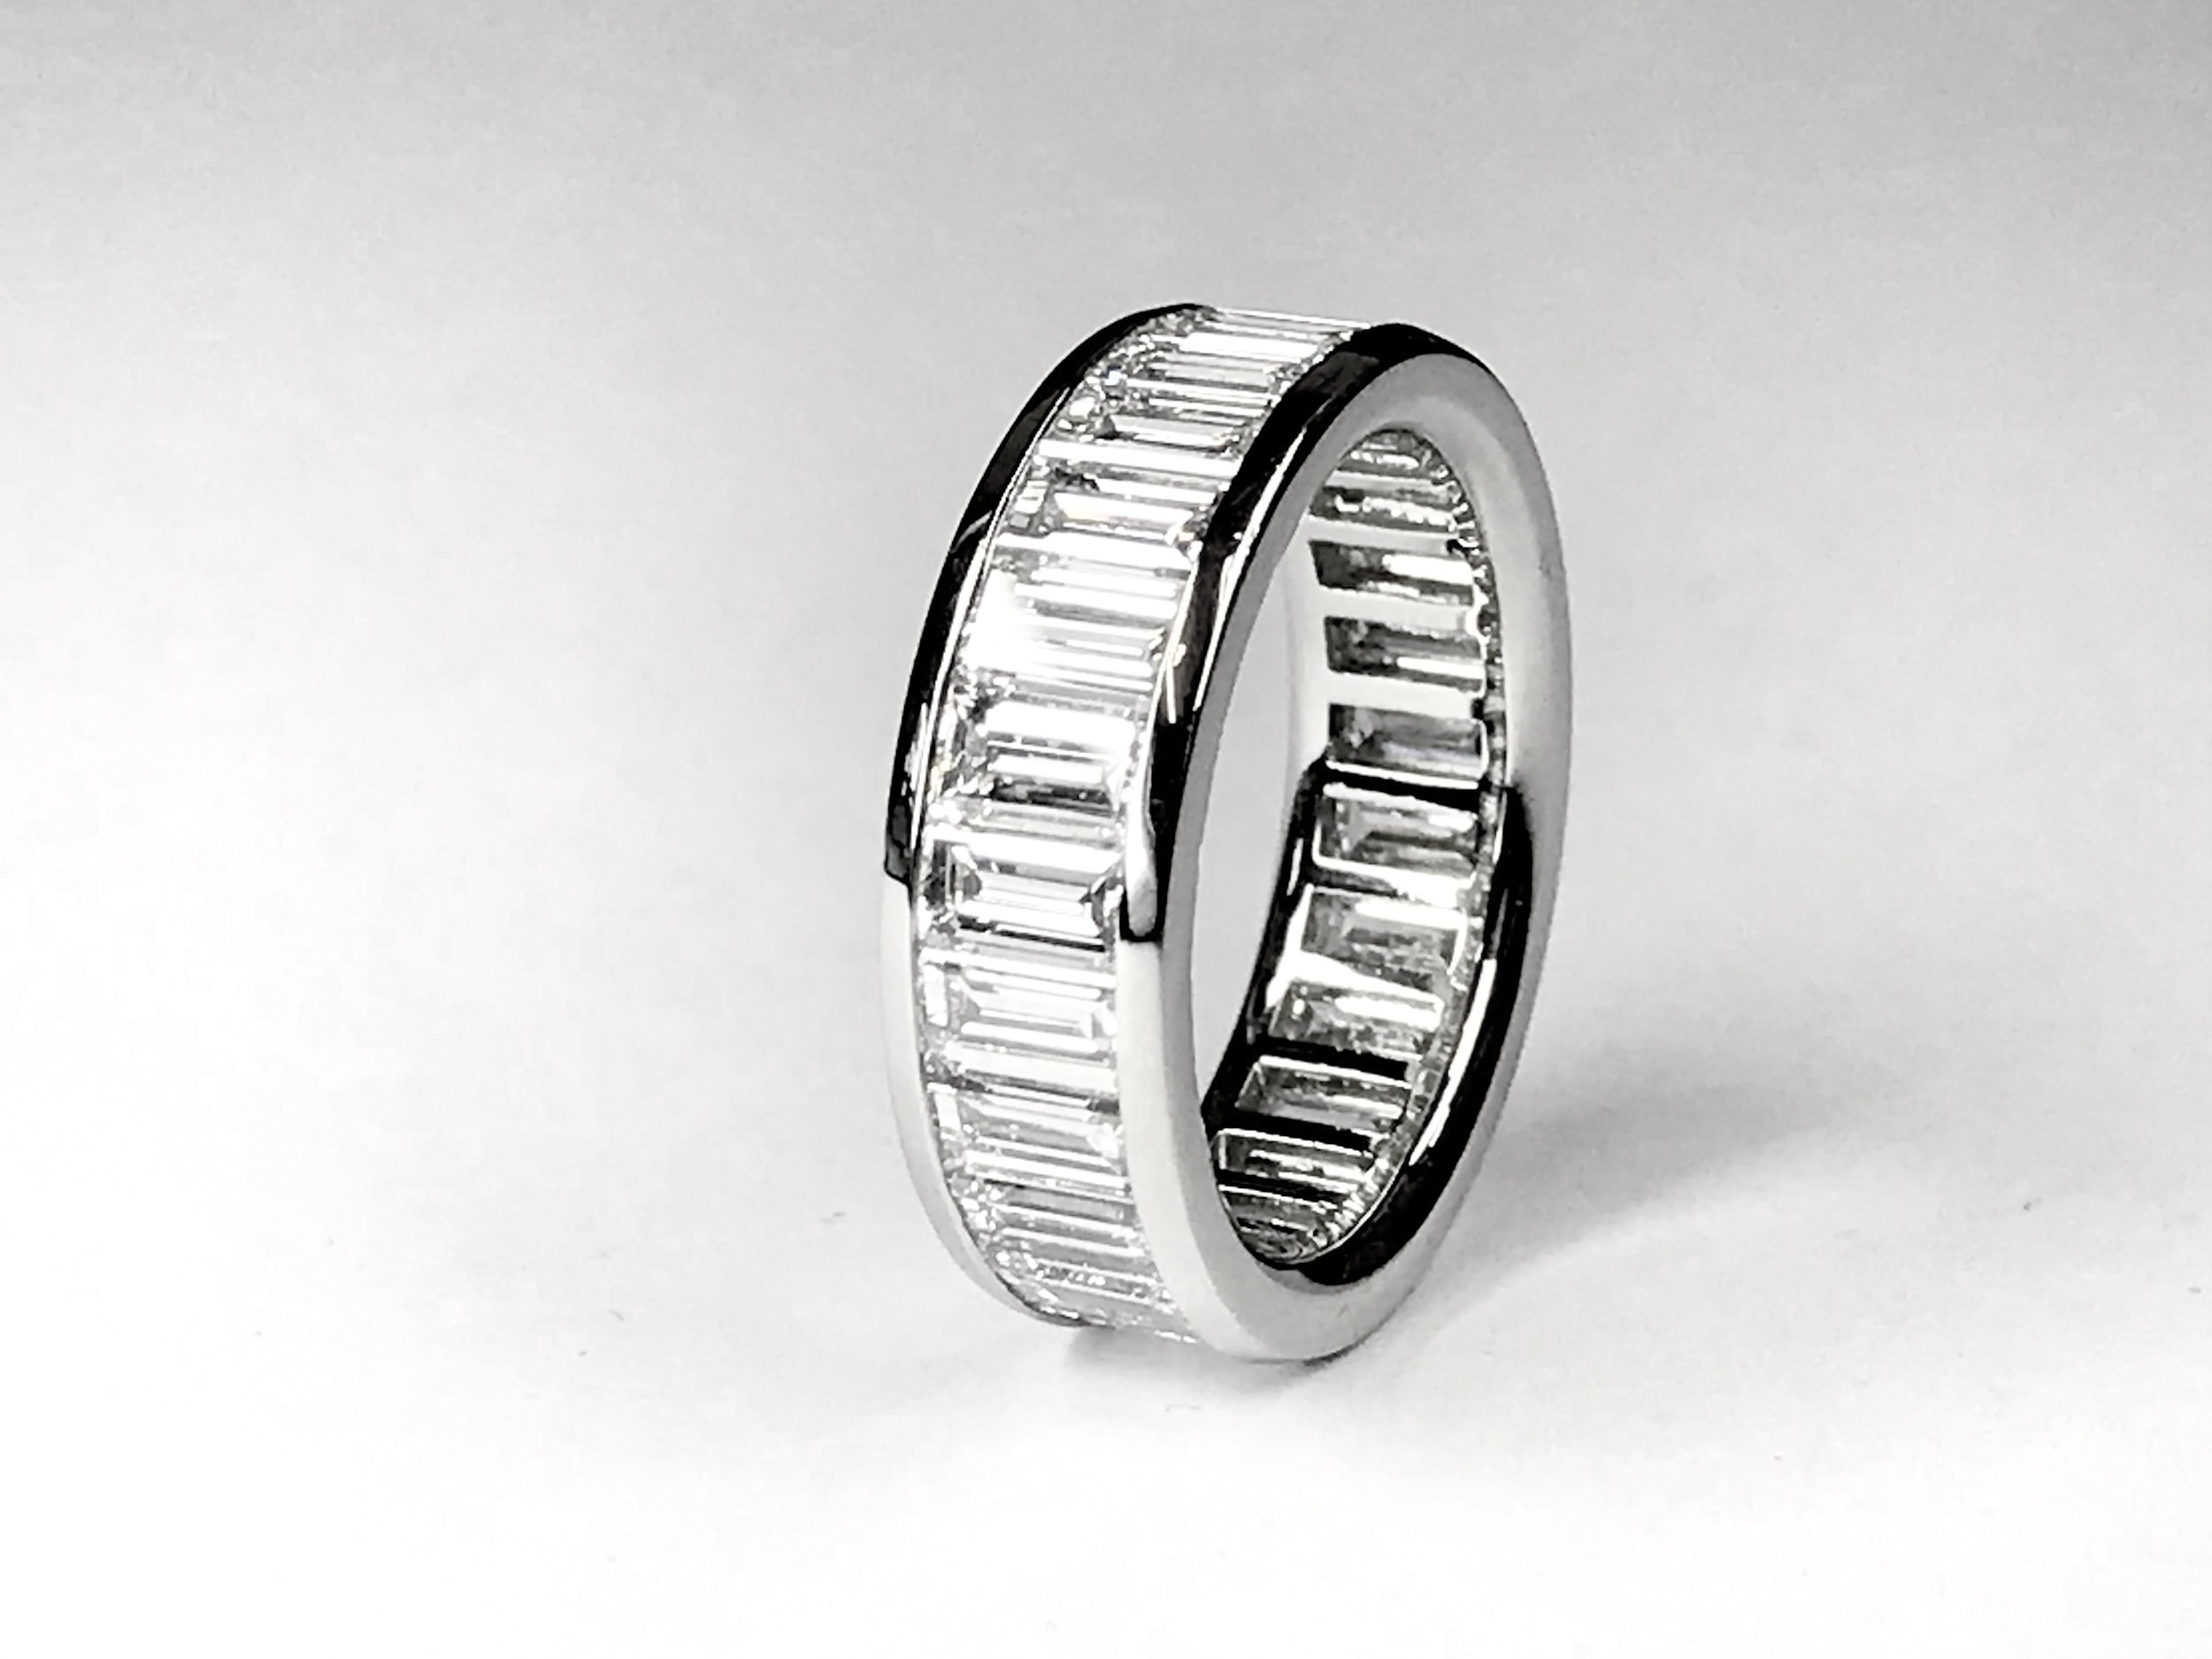 Platinum mounted 5ct total baguette cut diamond eternity ring. Made in Chichester, England.